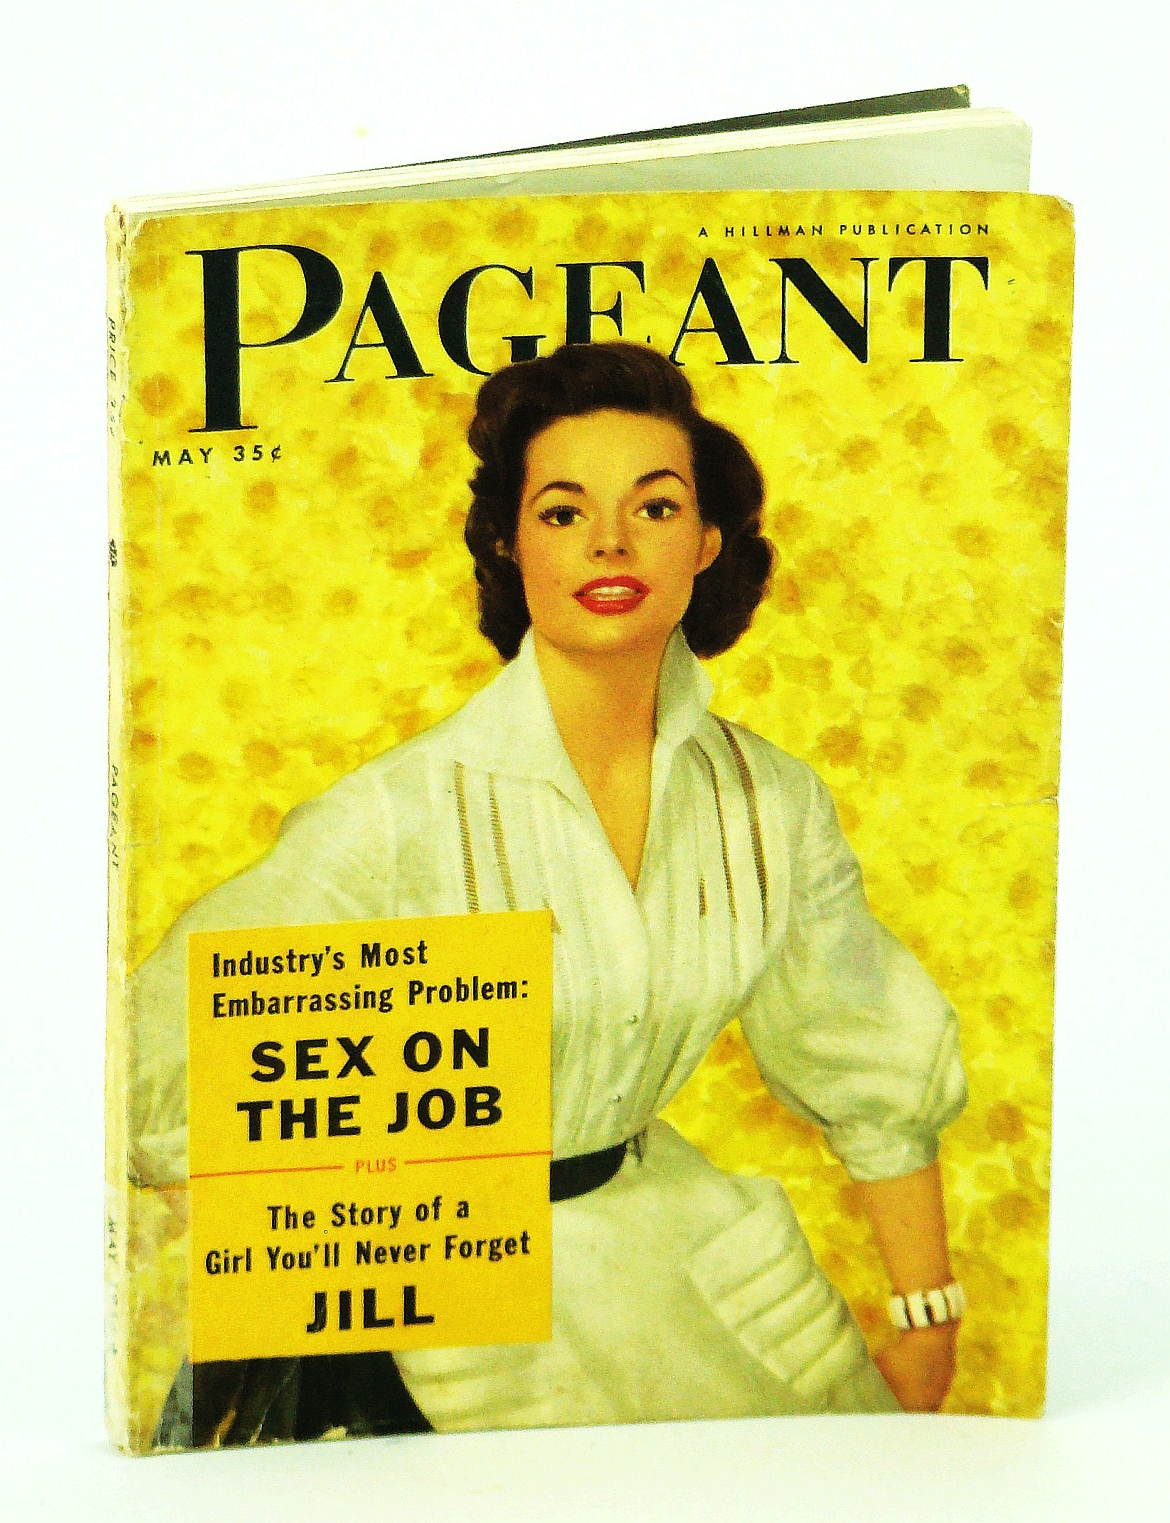 Image for Pageant Magazine, May 1956: Sex on the Job / Madelyn Darrow Cover Photo